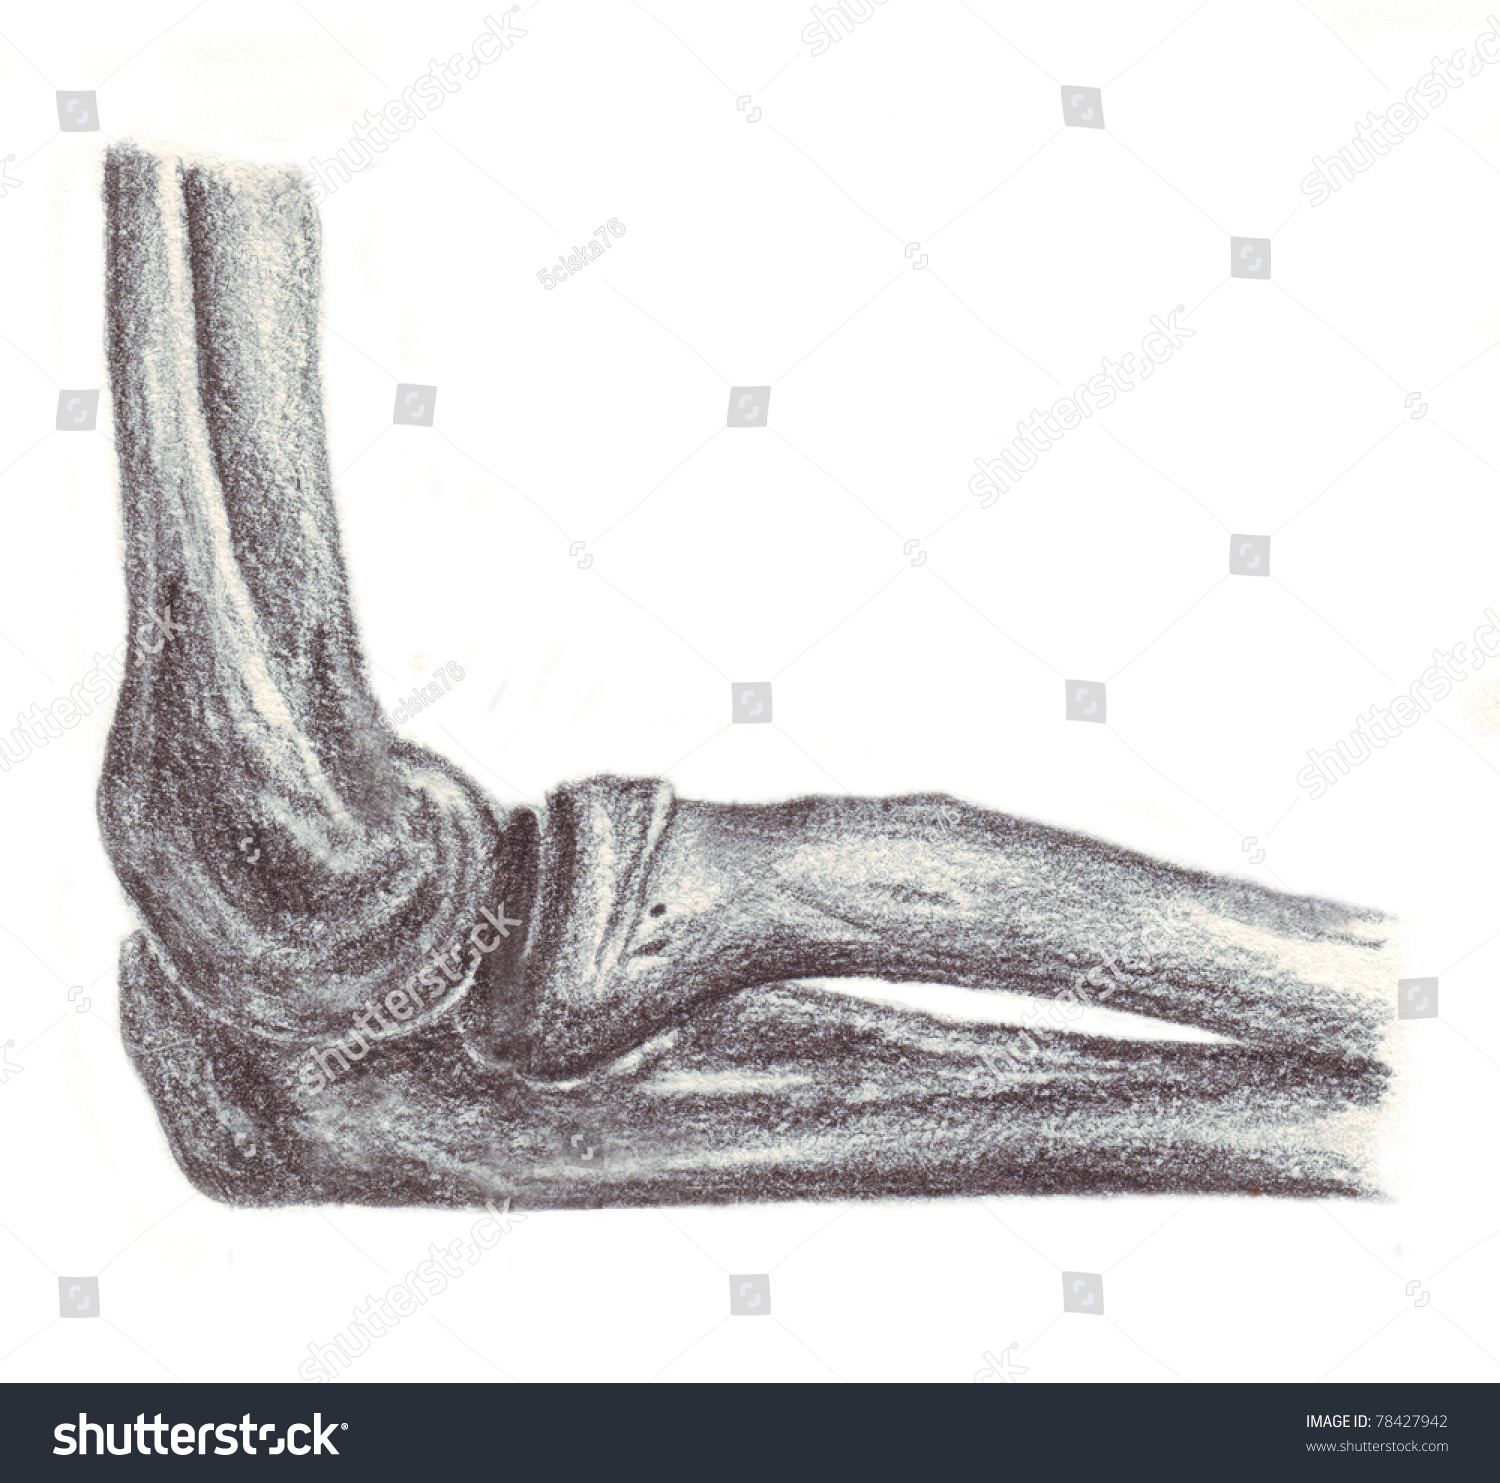 Human Anatomy Articulation Elbow Stock Illustration 78427942 ...